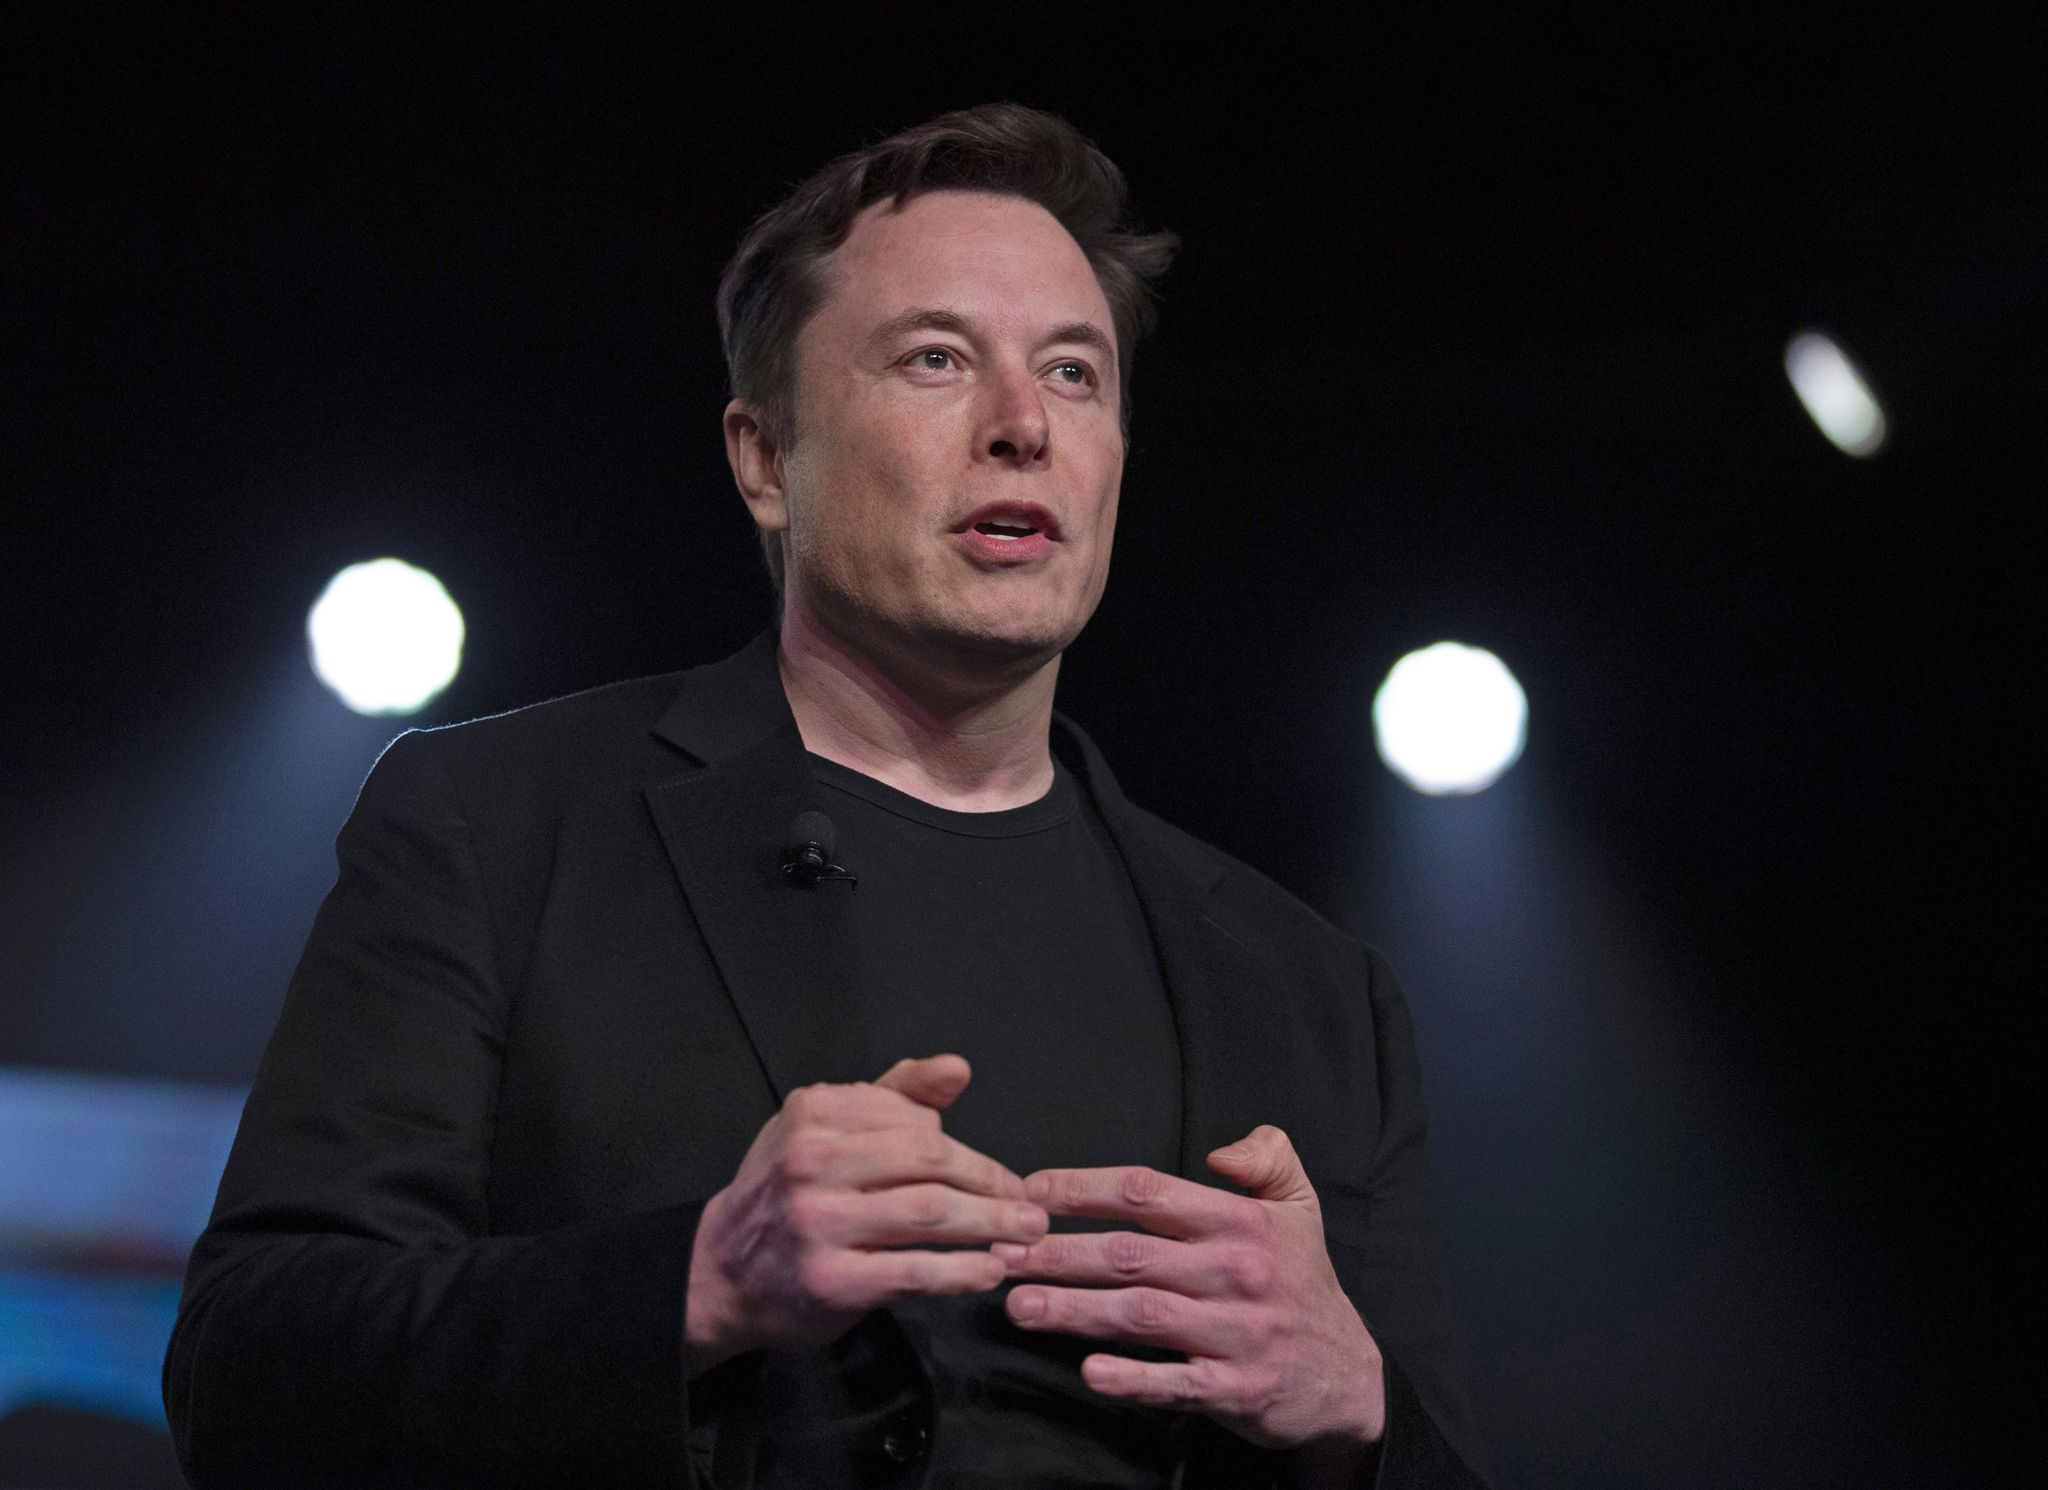 Tesla CEO Elon Musk predicts record output, sales in 2Q